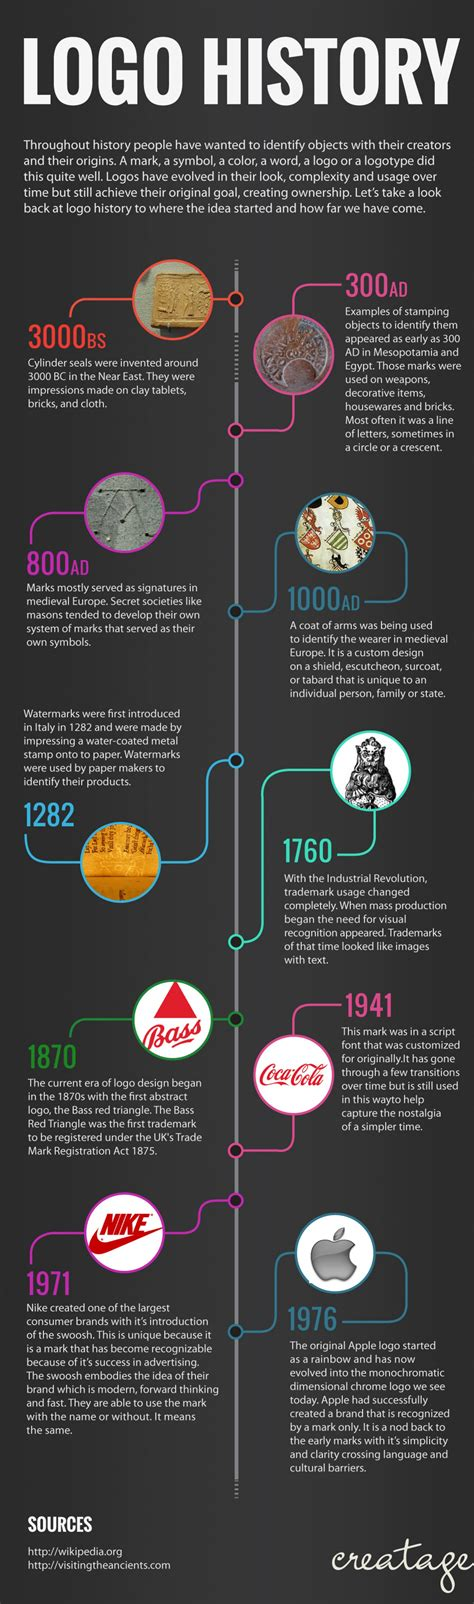 design logo history history of the logo design visual ly